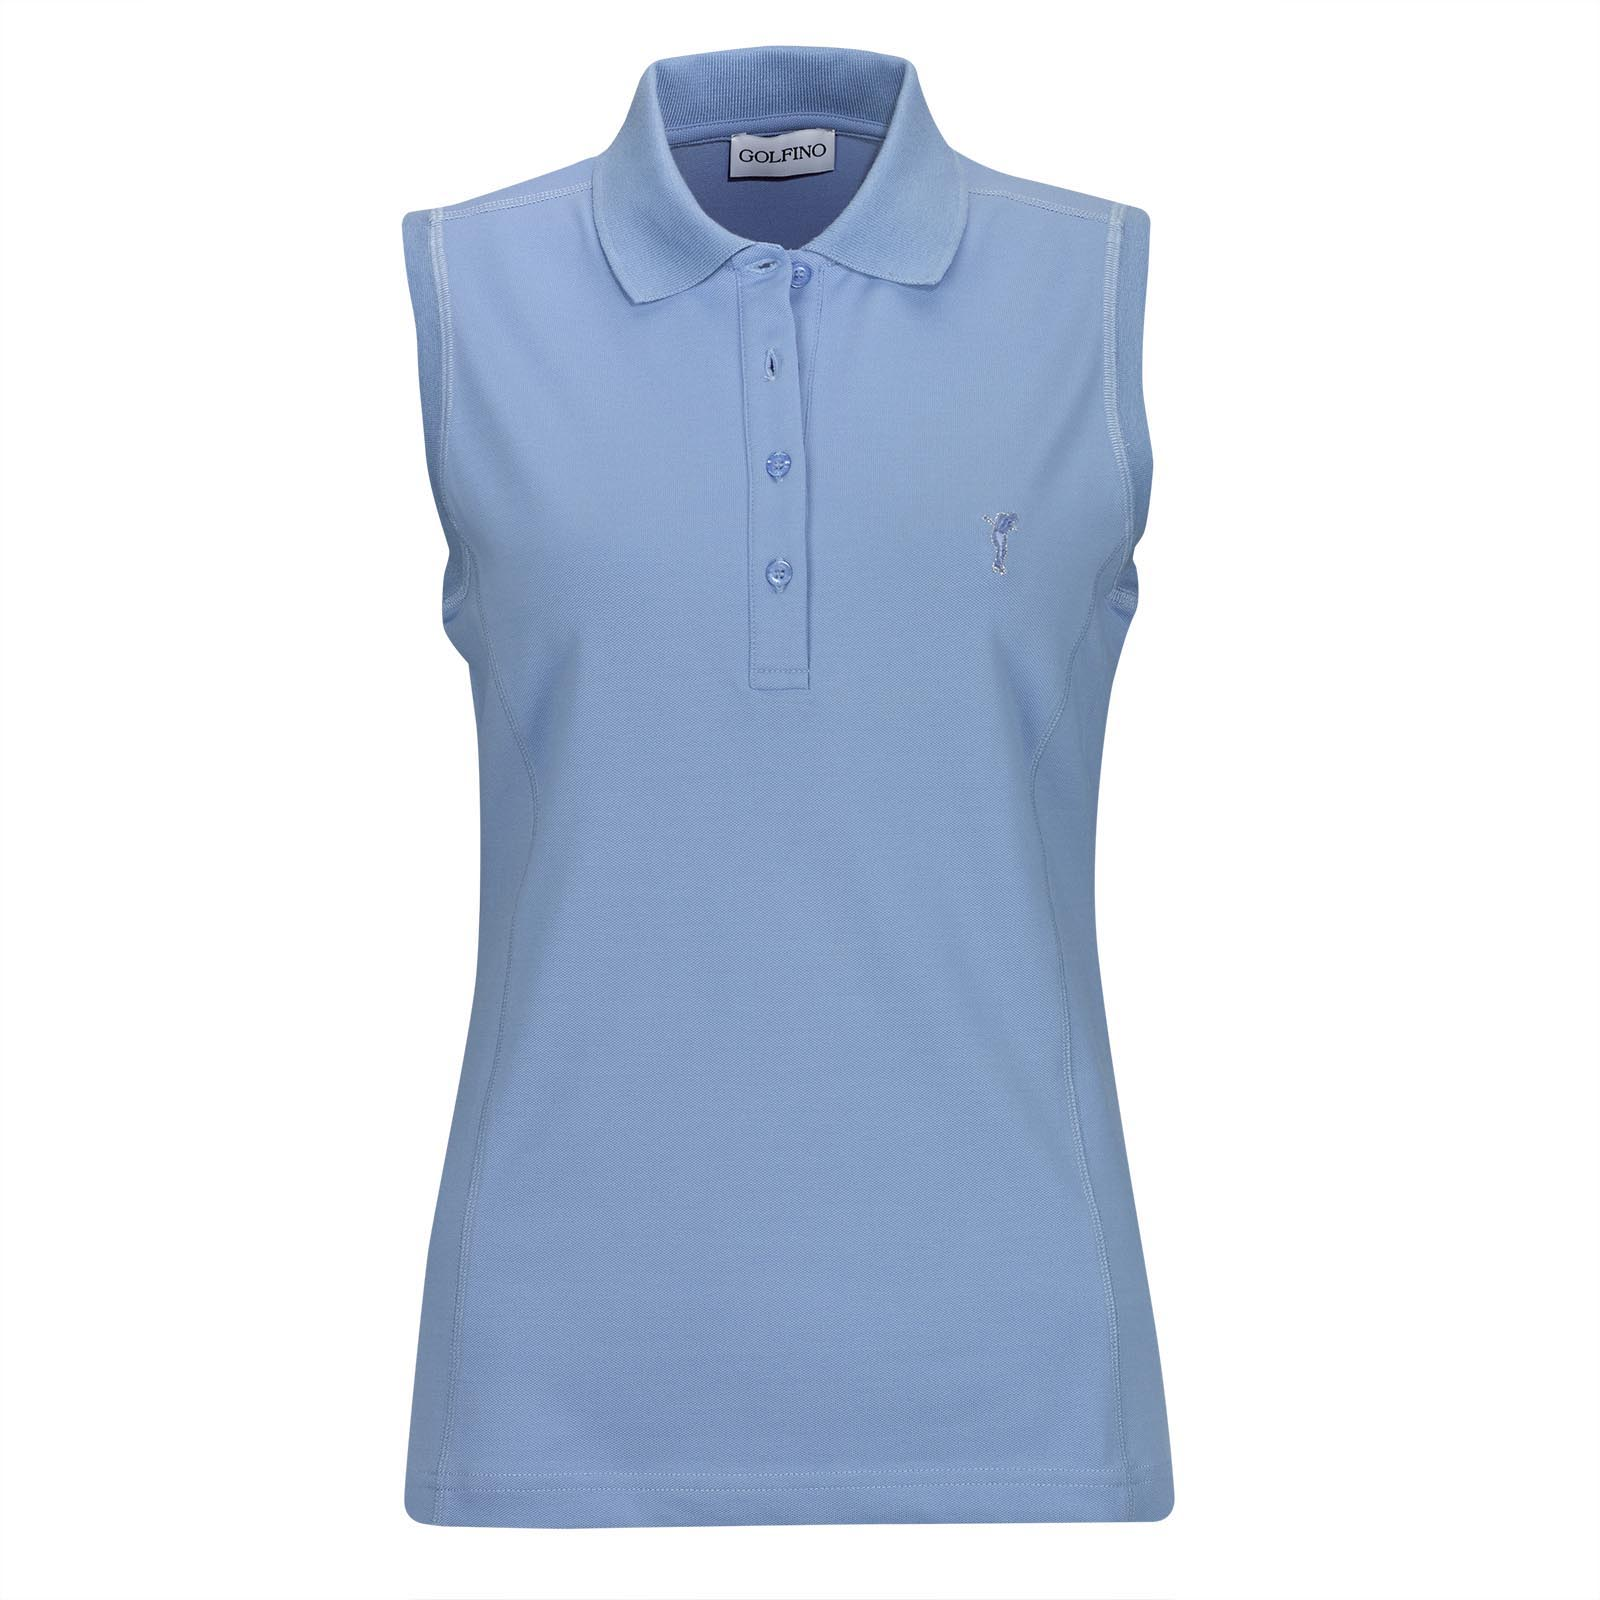 Sleeveless ladies' golf polo shirt with sun protection in slim fit